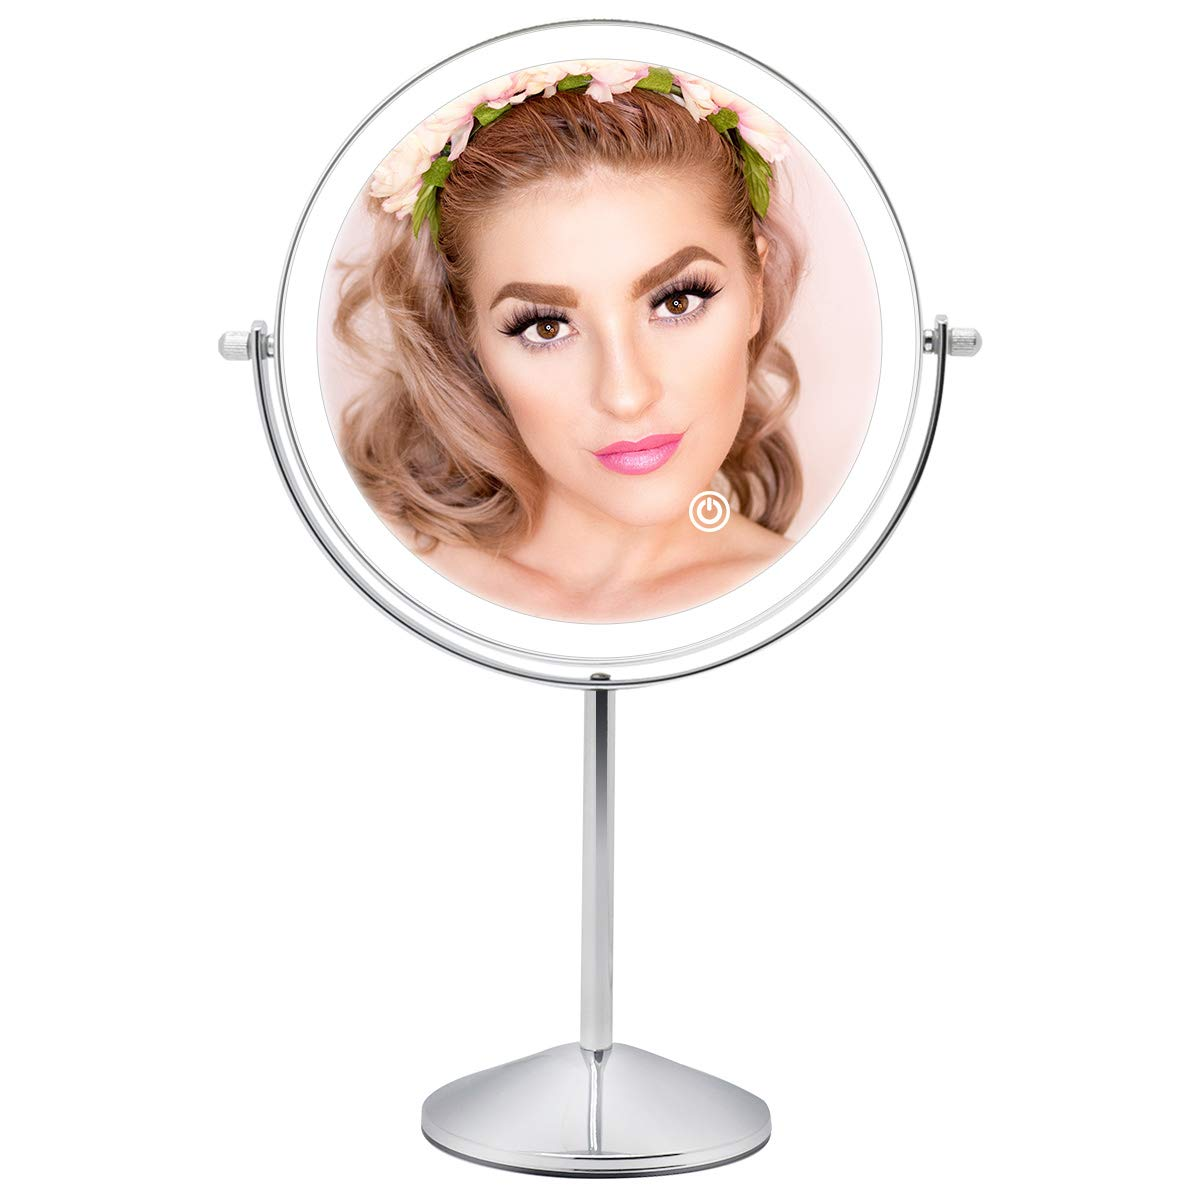 FASCINATE Rechargeable Lighted Makeup Mirror with 3 Color Lights, 8 Inch 1x 10x Magnifying Double Sided Led Vanity Mirror, 10x Magnification Cosmetic Mirror Tabletop Cord Cordless